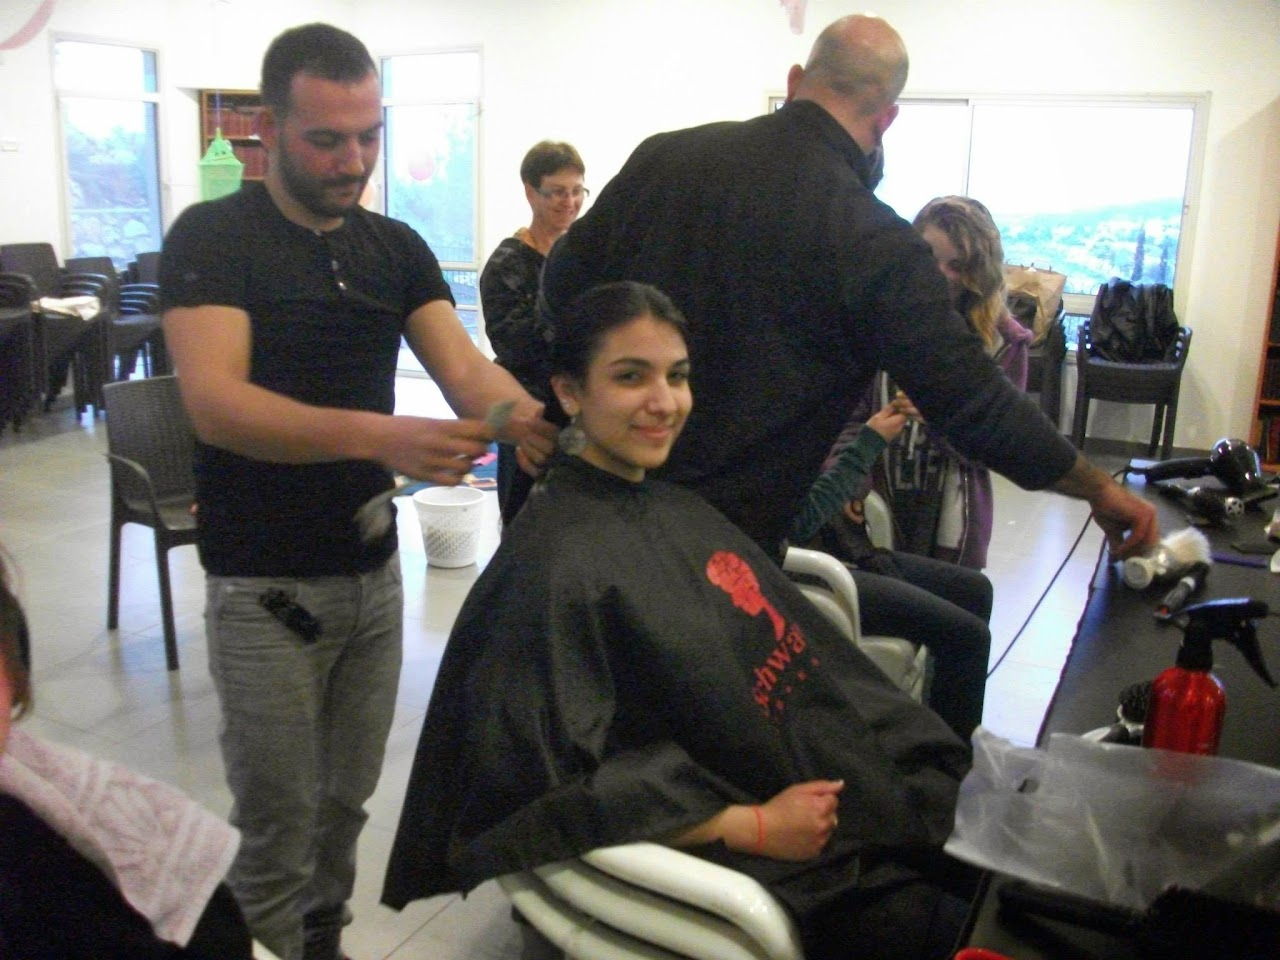 Donating hair for cancer patients 2014  - 1655176_539677489481882_1466367154_o.jpg